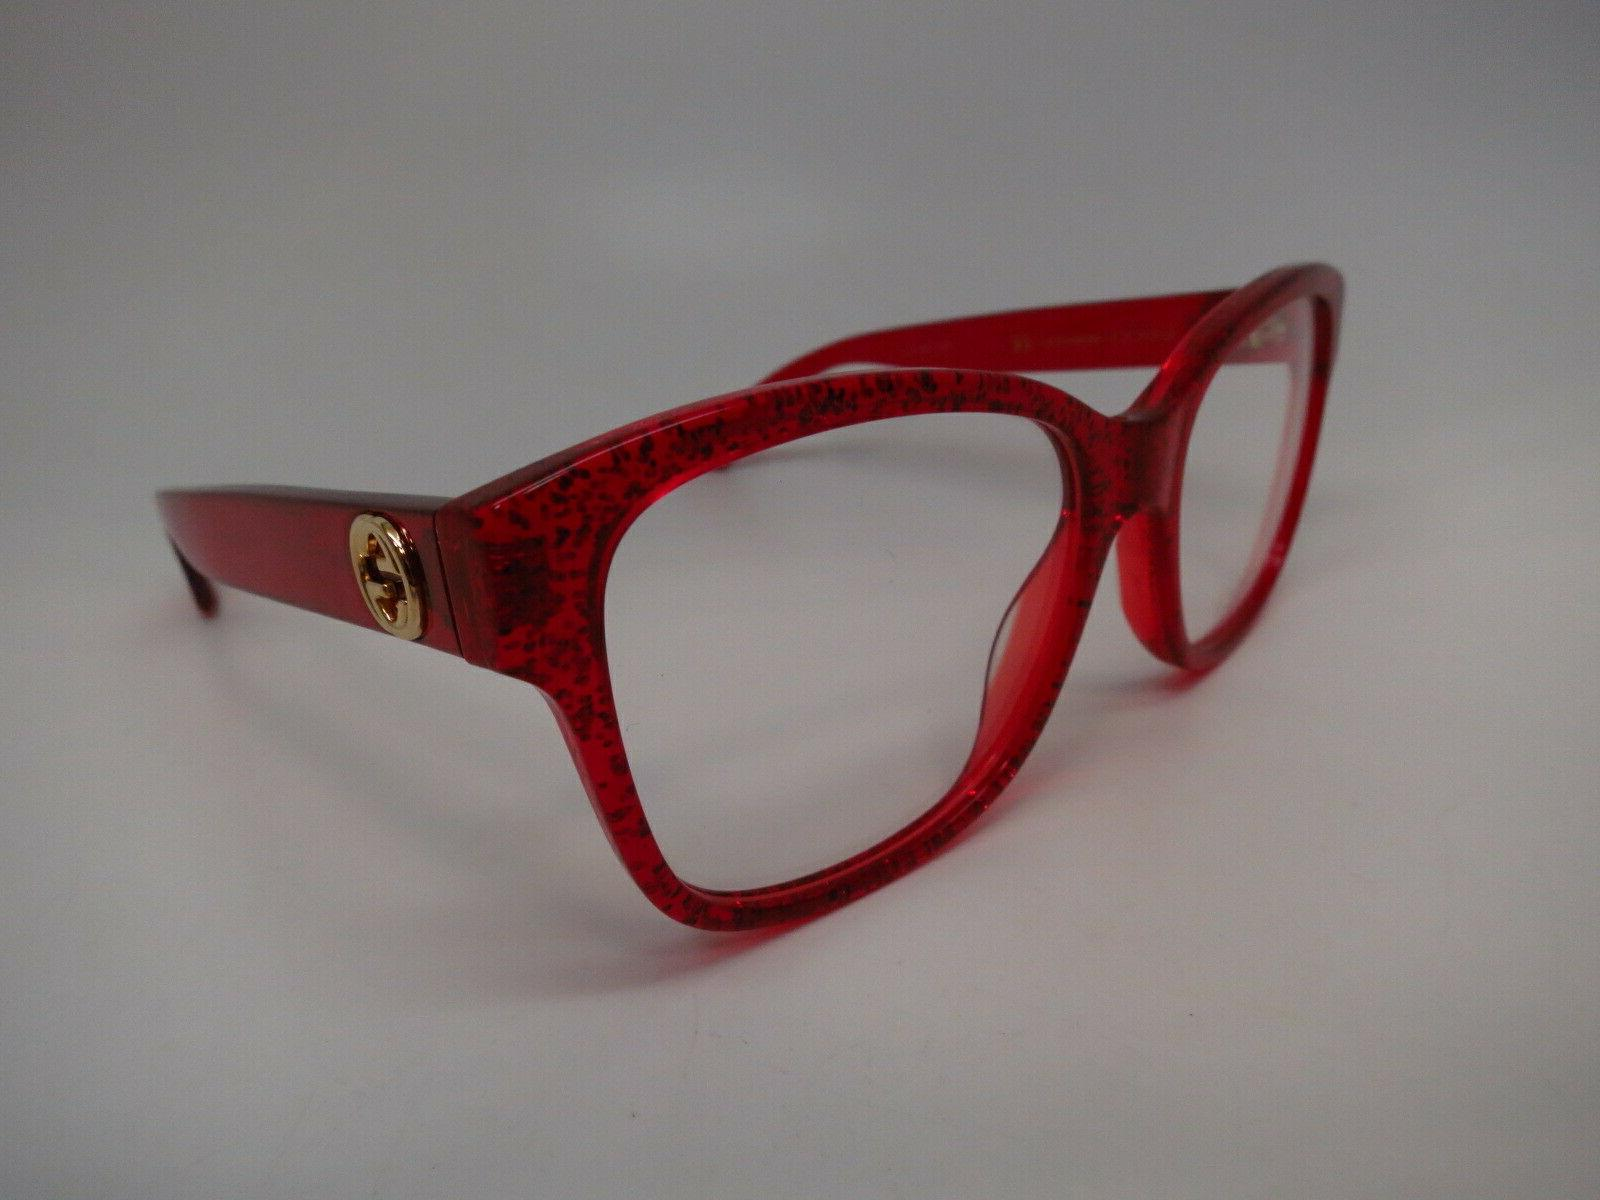 authentic gg0038o 004 red w clear eyeglasses